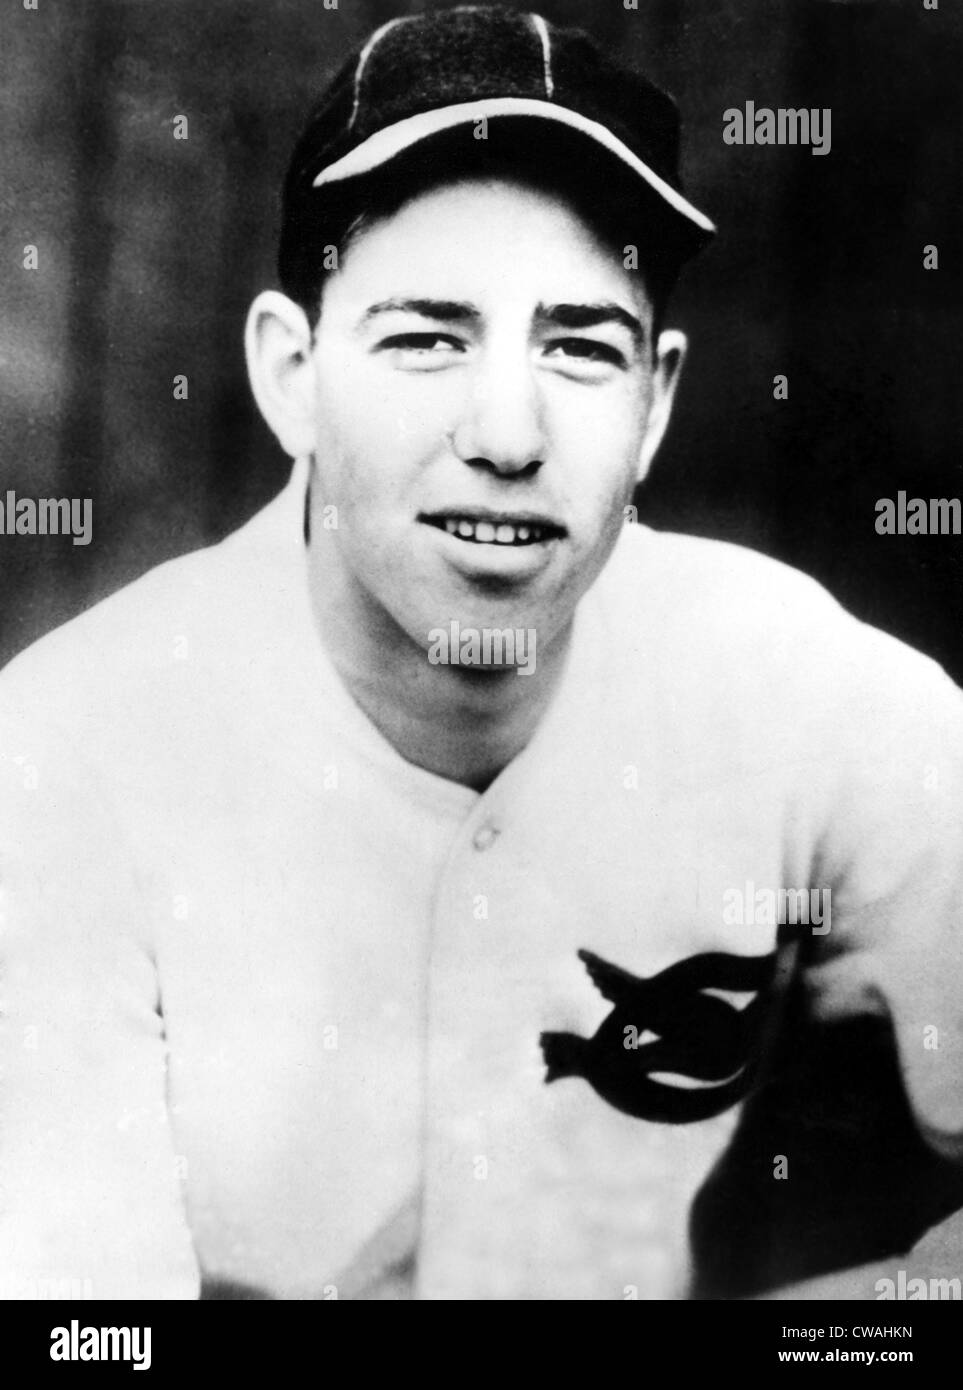 Jay Hanna 'Dizzy' Dean, (1910-1974) ace pitcher for St. Louis Cardinals during 1930s, 9/30/34. Courtesy: - Stock Image